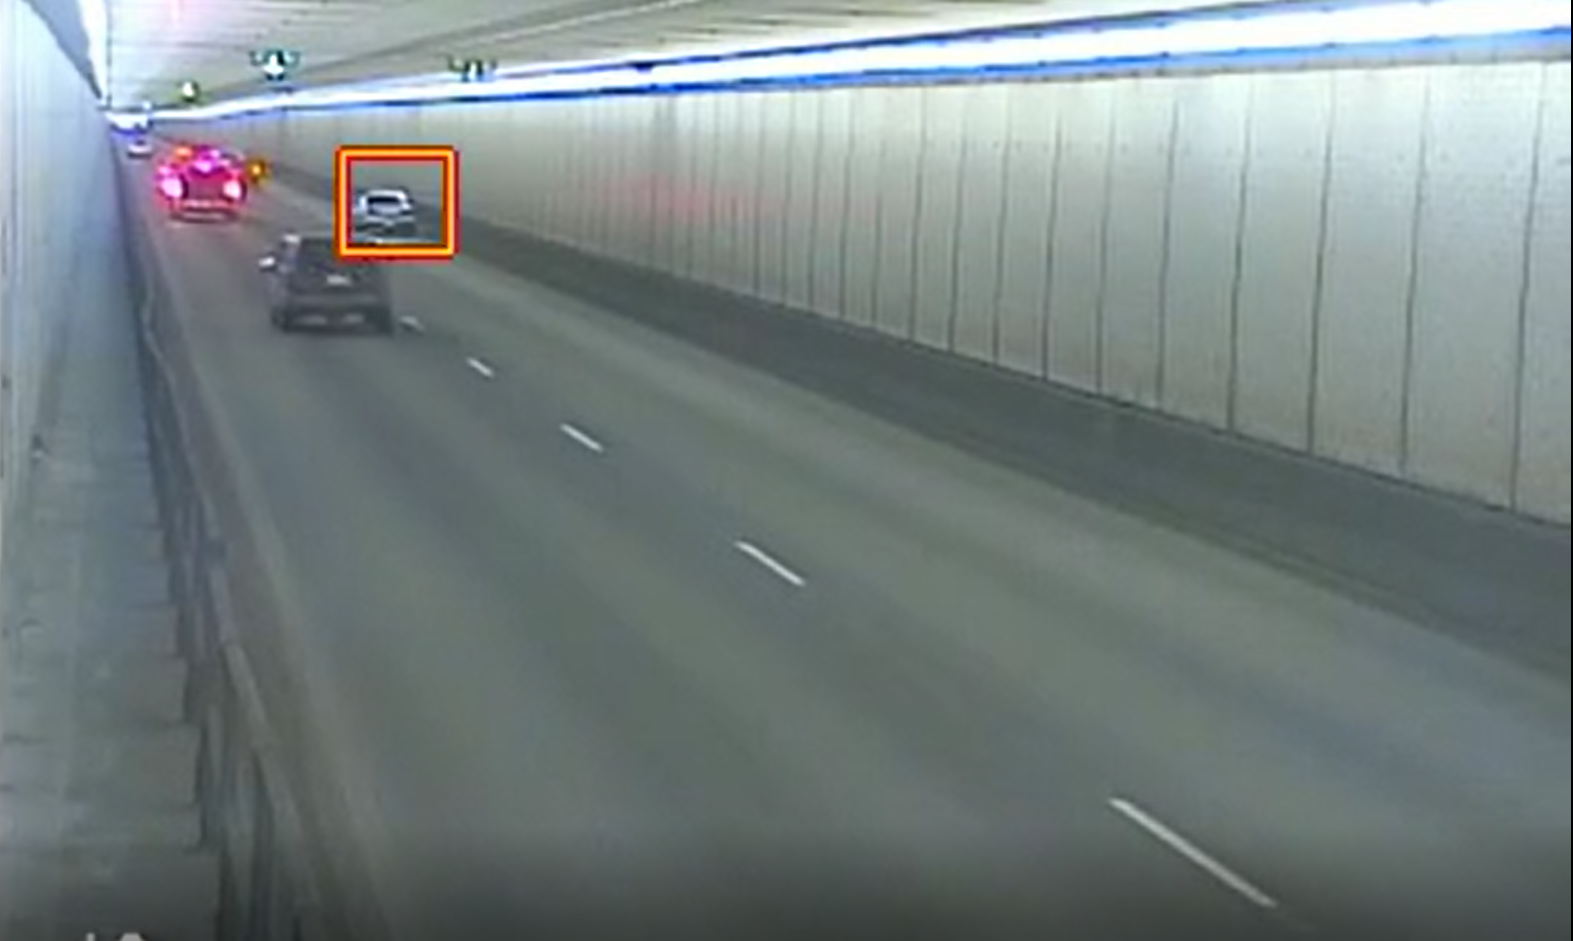 TrafficVision detects a stopped vehicle in a tunnel. Fast incident notification can result in quick emergency response and prevent potential secondary accidents.